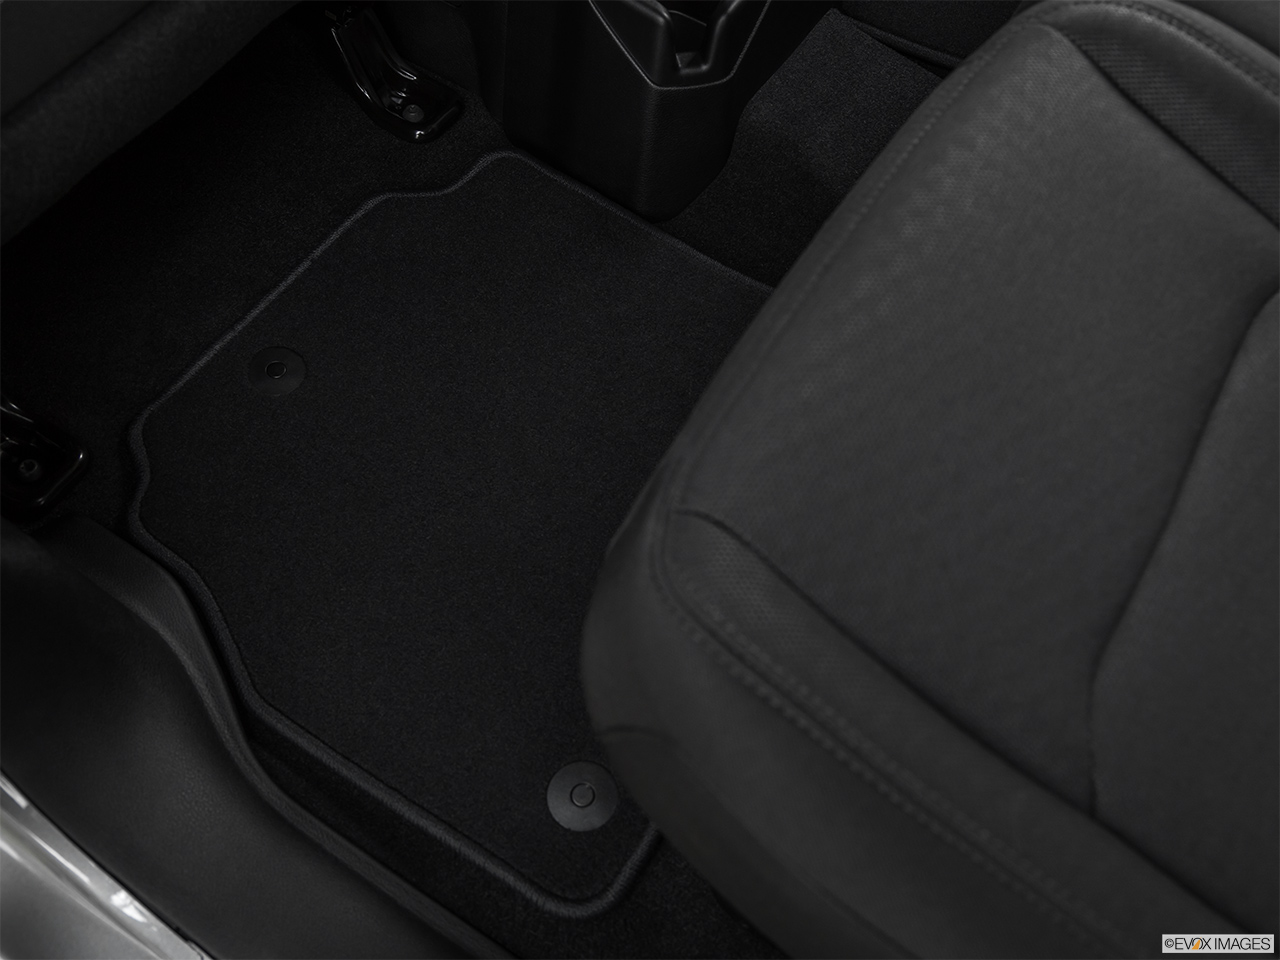 2020 Jeep Gladiator Sport S Rear driver's side floor mat. Mid-seat level from outside looking in.